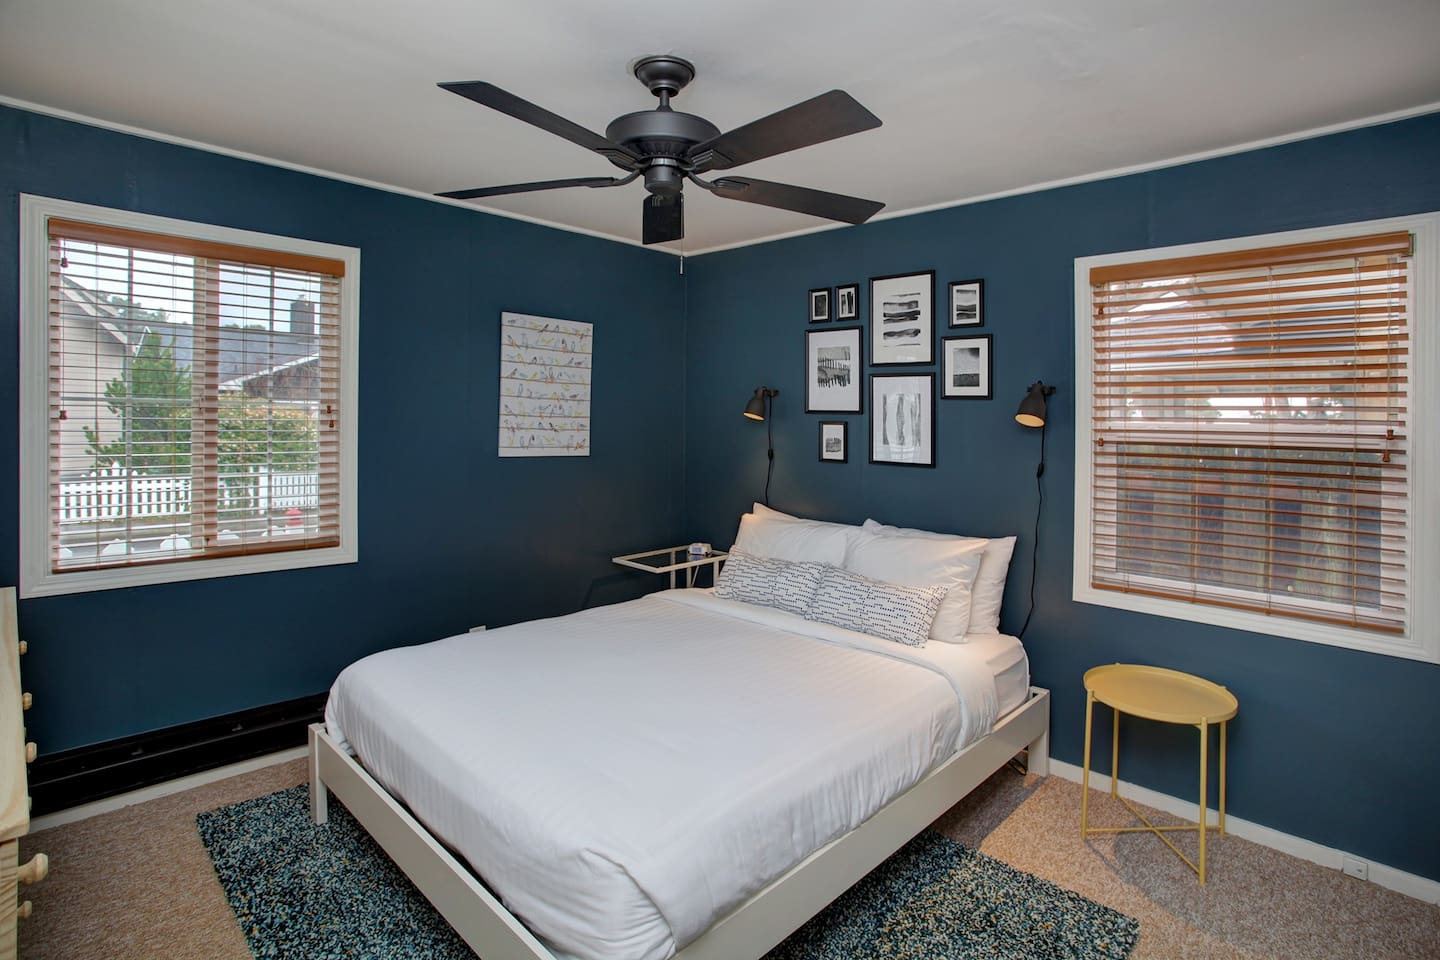 Queen bedroom perfect for a getaway for 2!